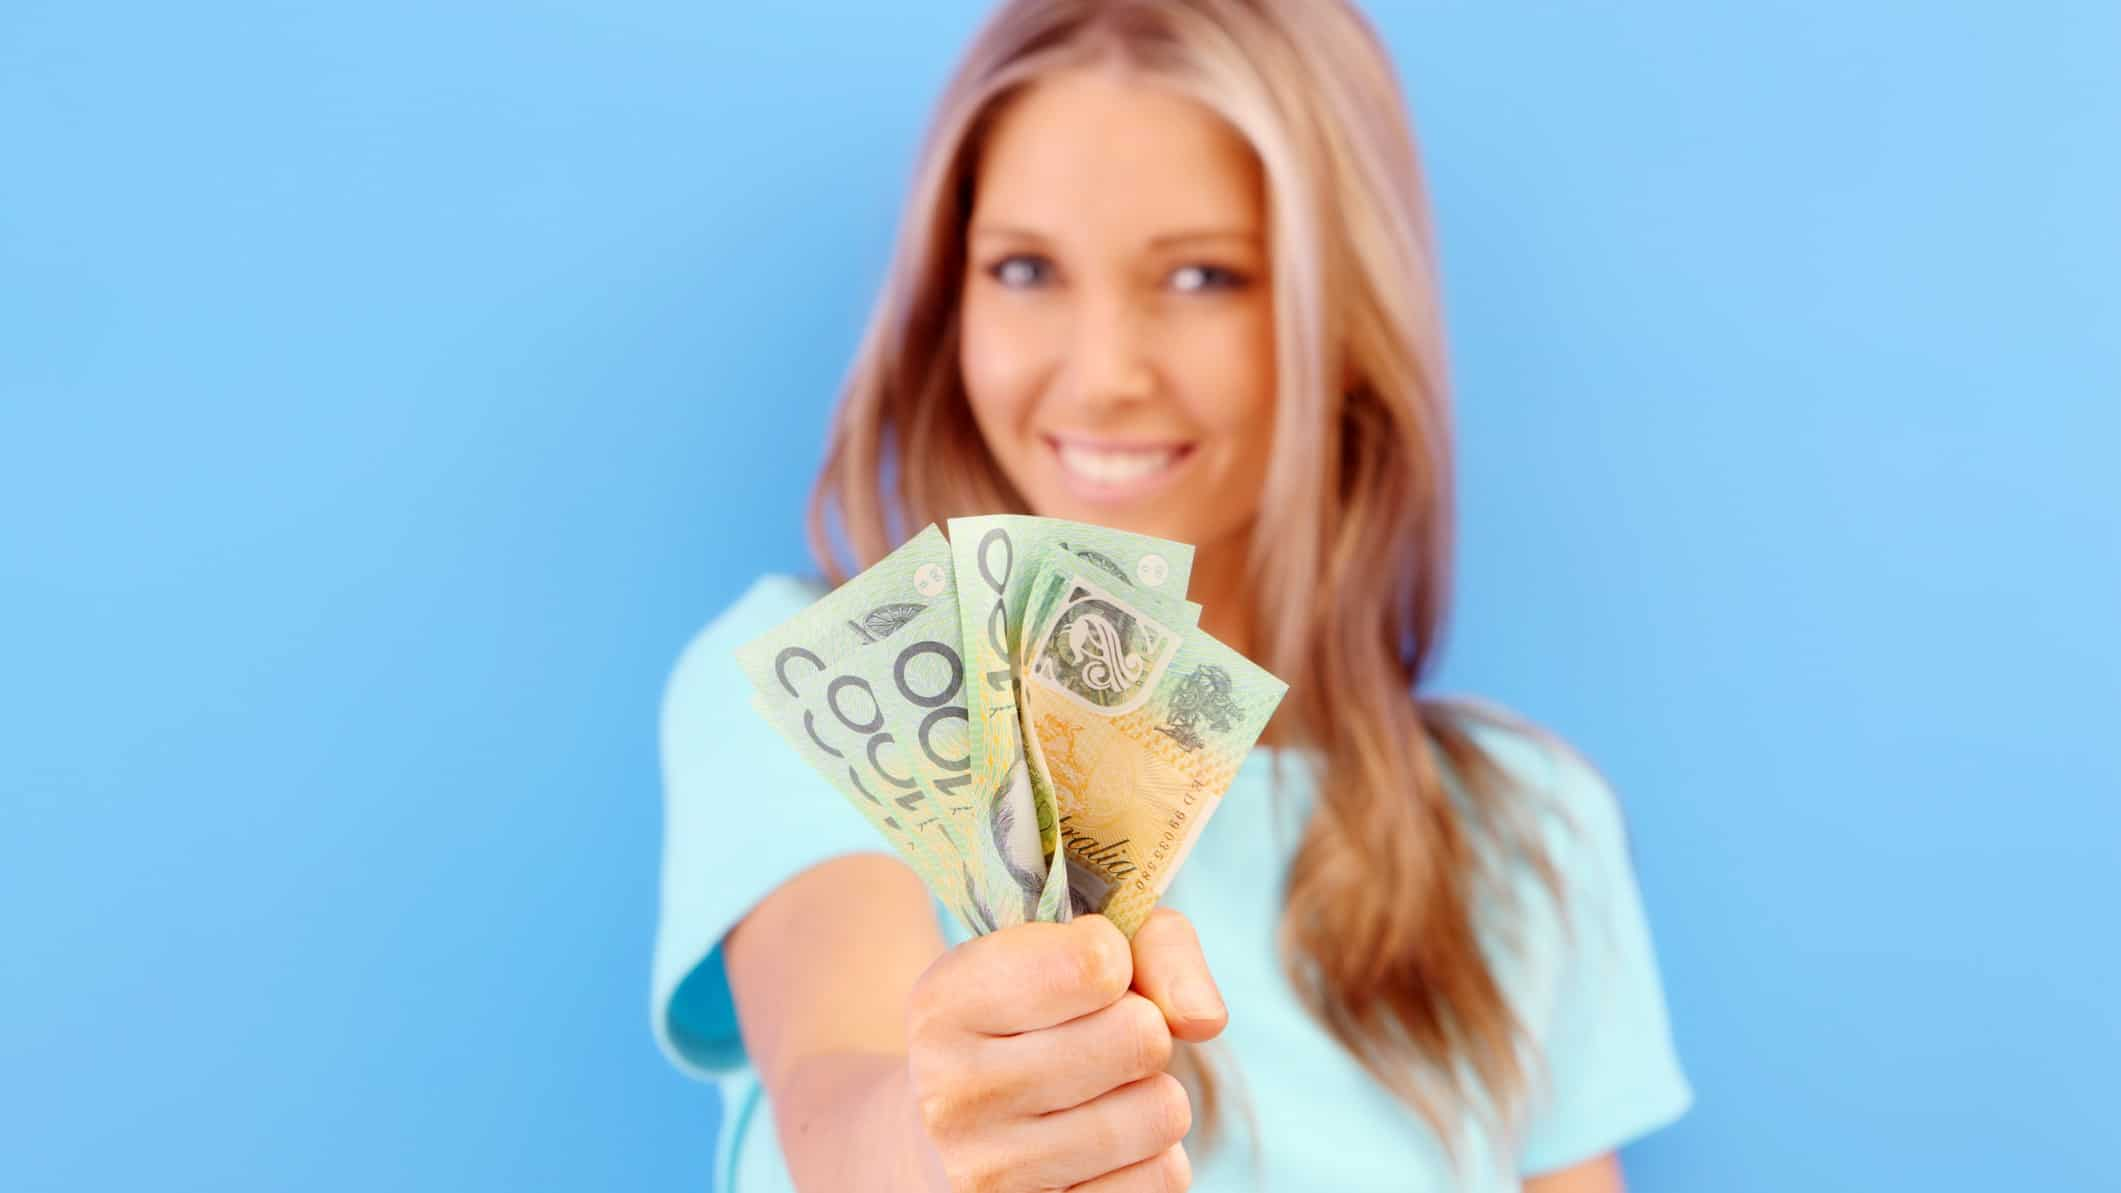 A smiling woman with a handful of $100 notes, inidcating strong share price gains